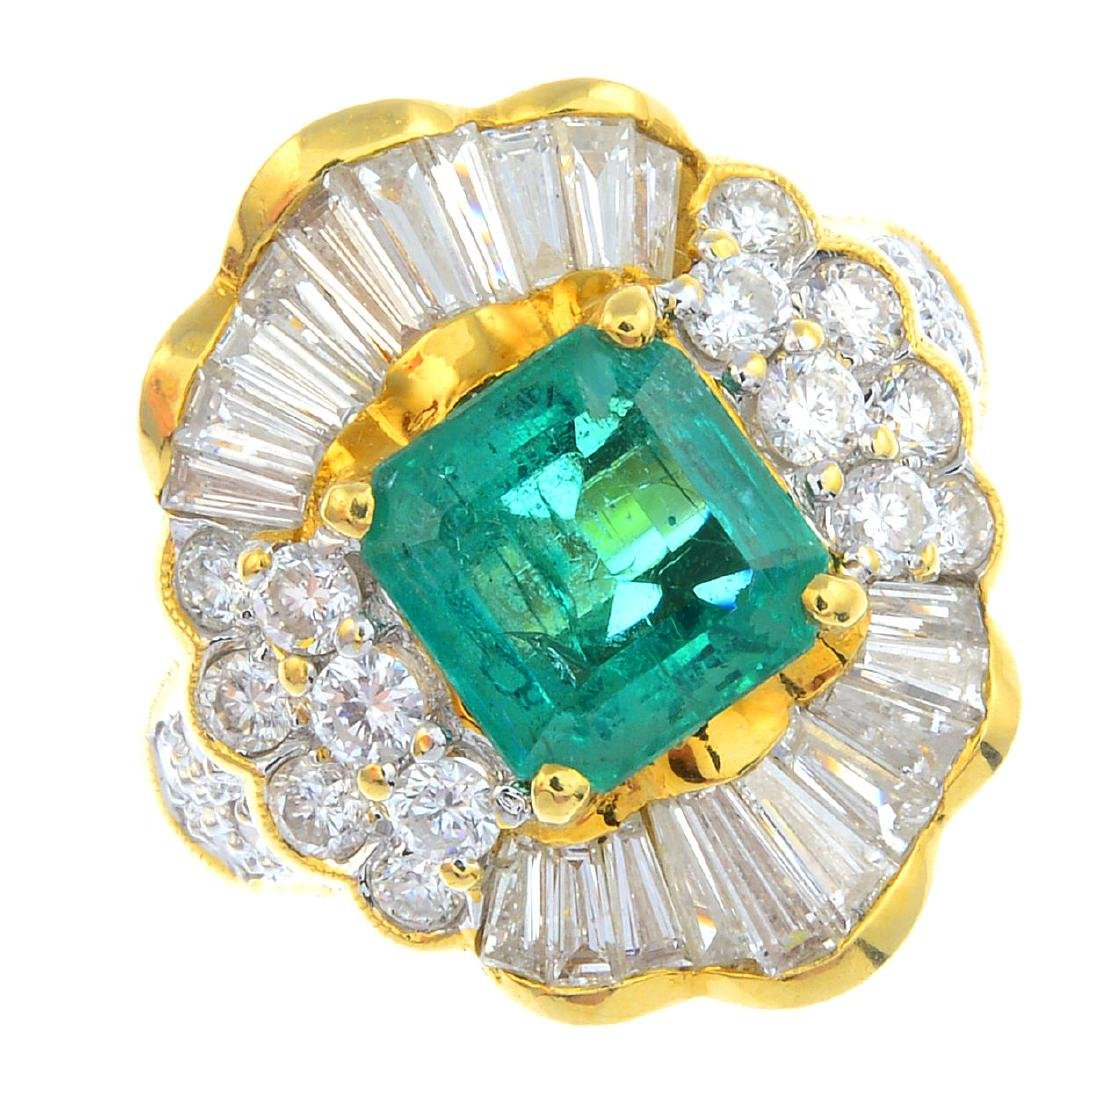 An emerald and diamond dress ring. The